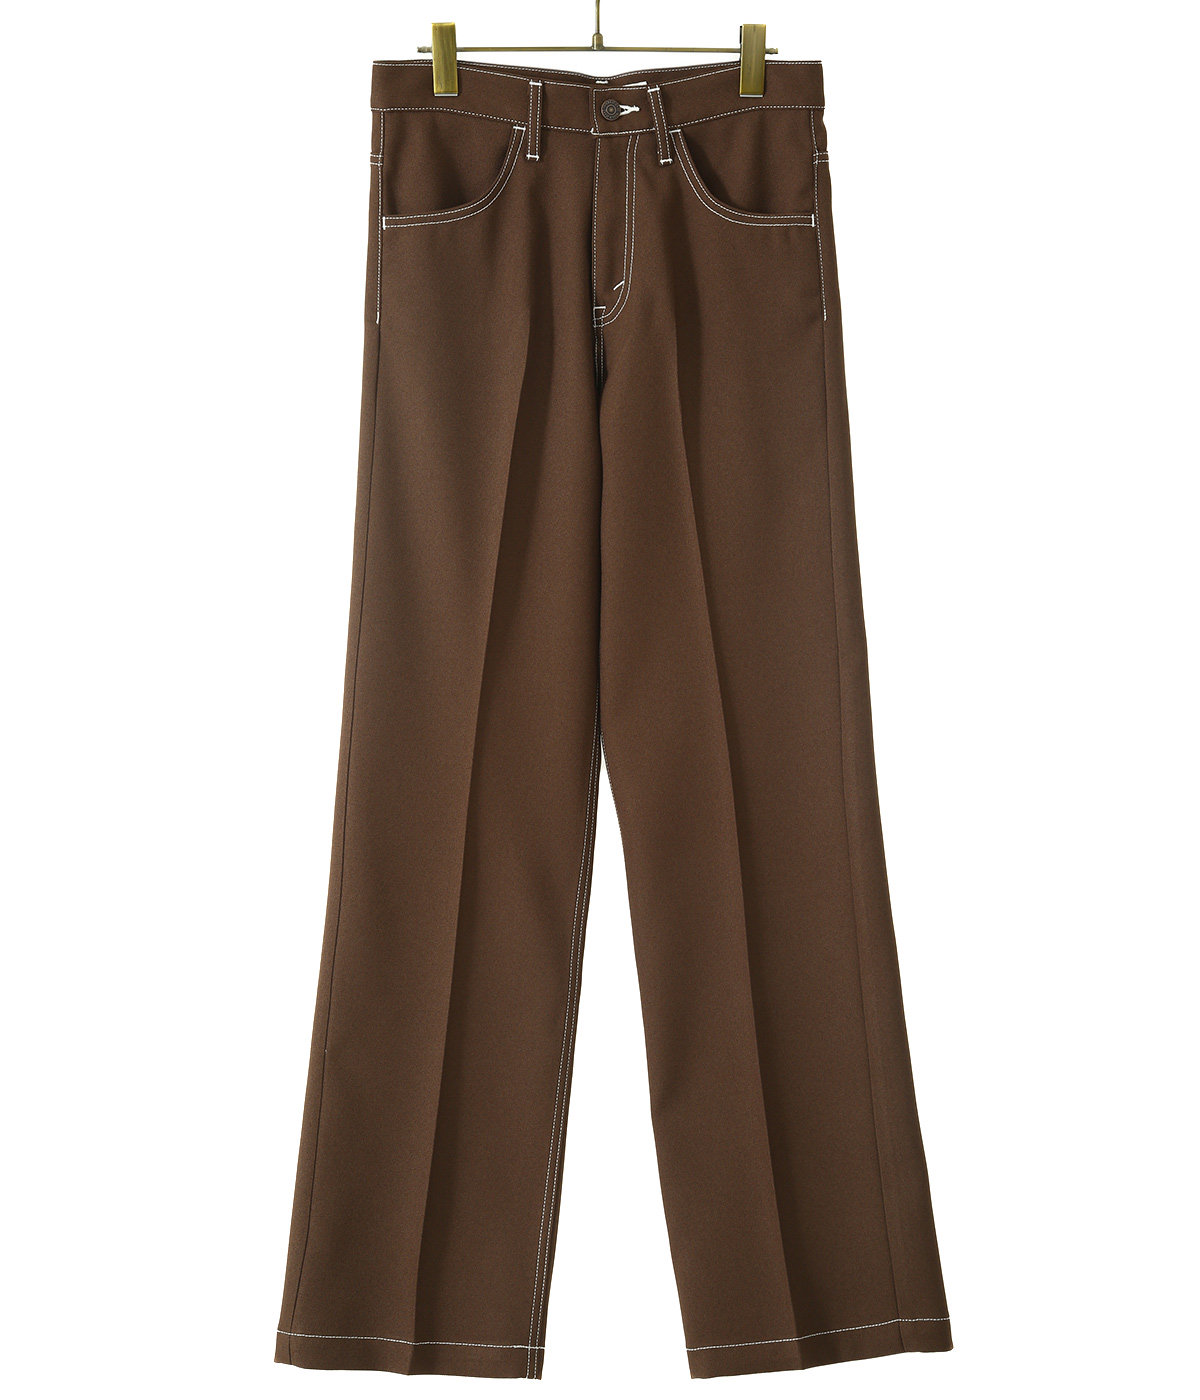 Flasher Pressed Pants